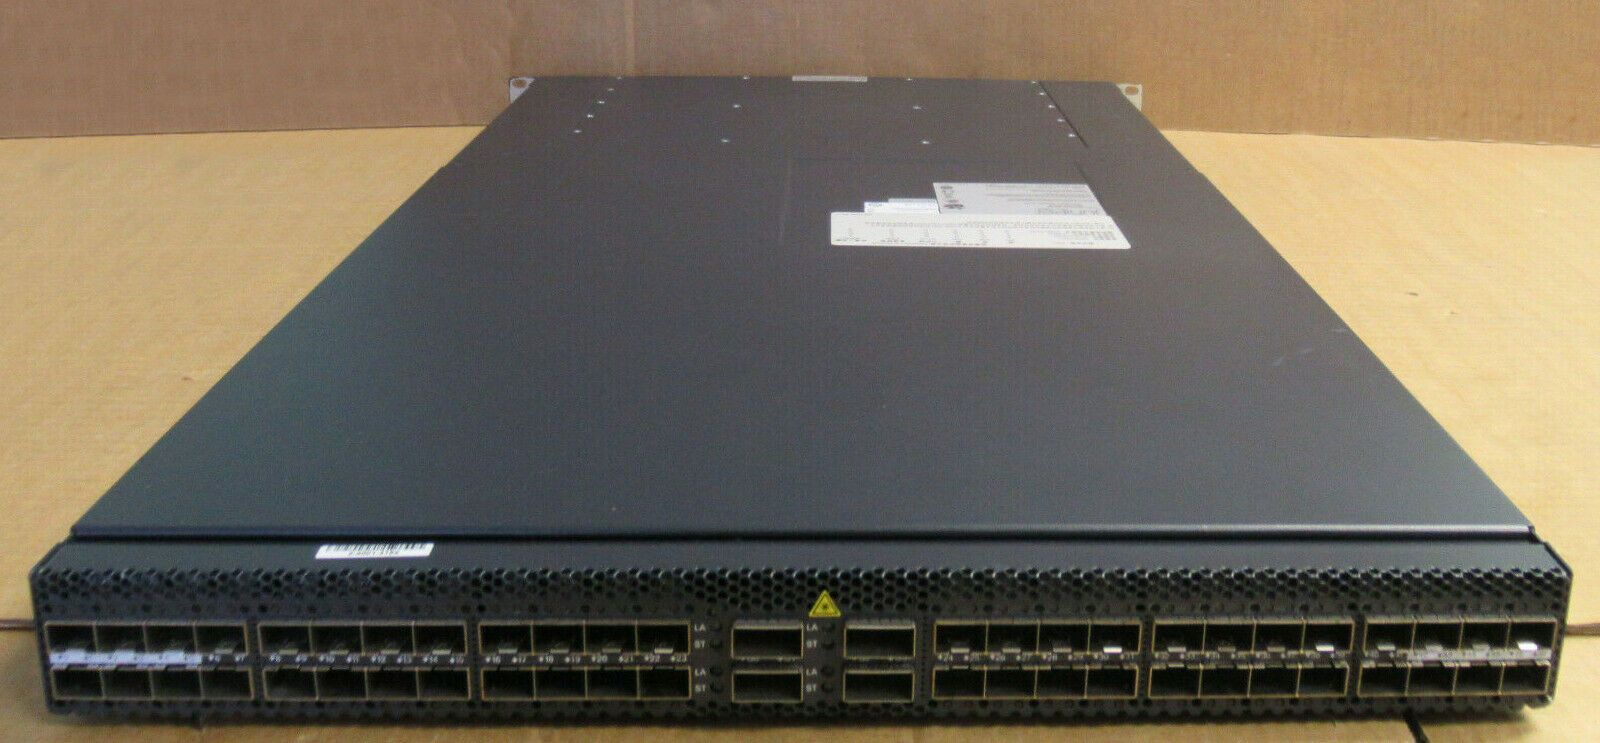 Juniper Networks QFX3500-48S4Q-E L3 1U 48x 10GB SFP 4x QSFP Ports Managed  Switch